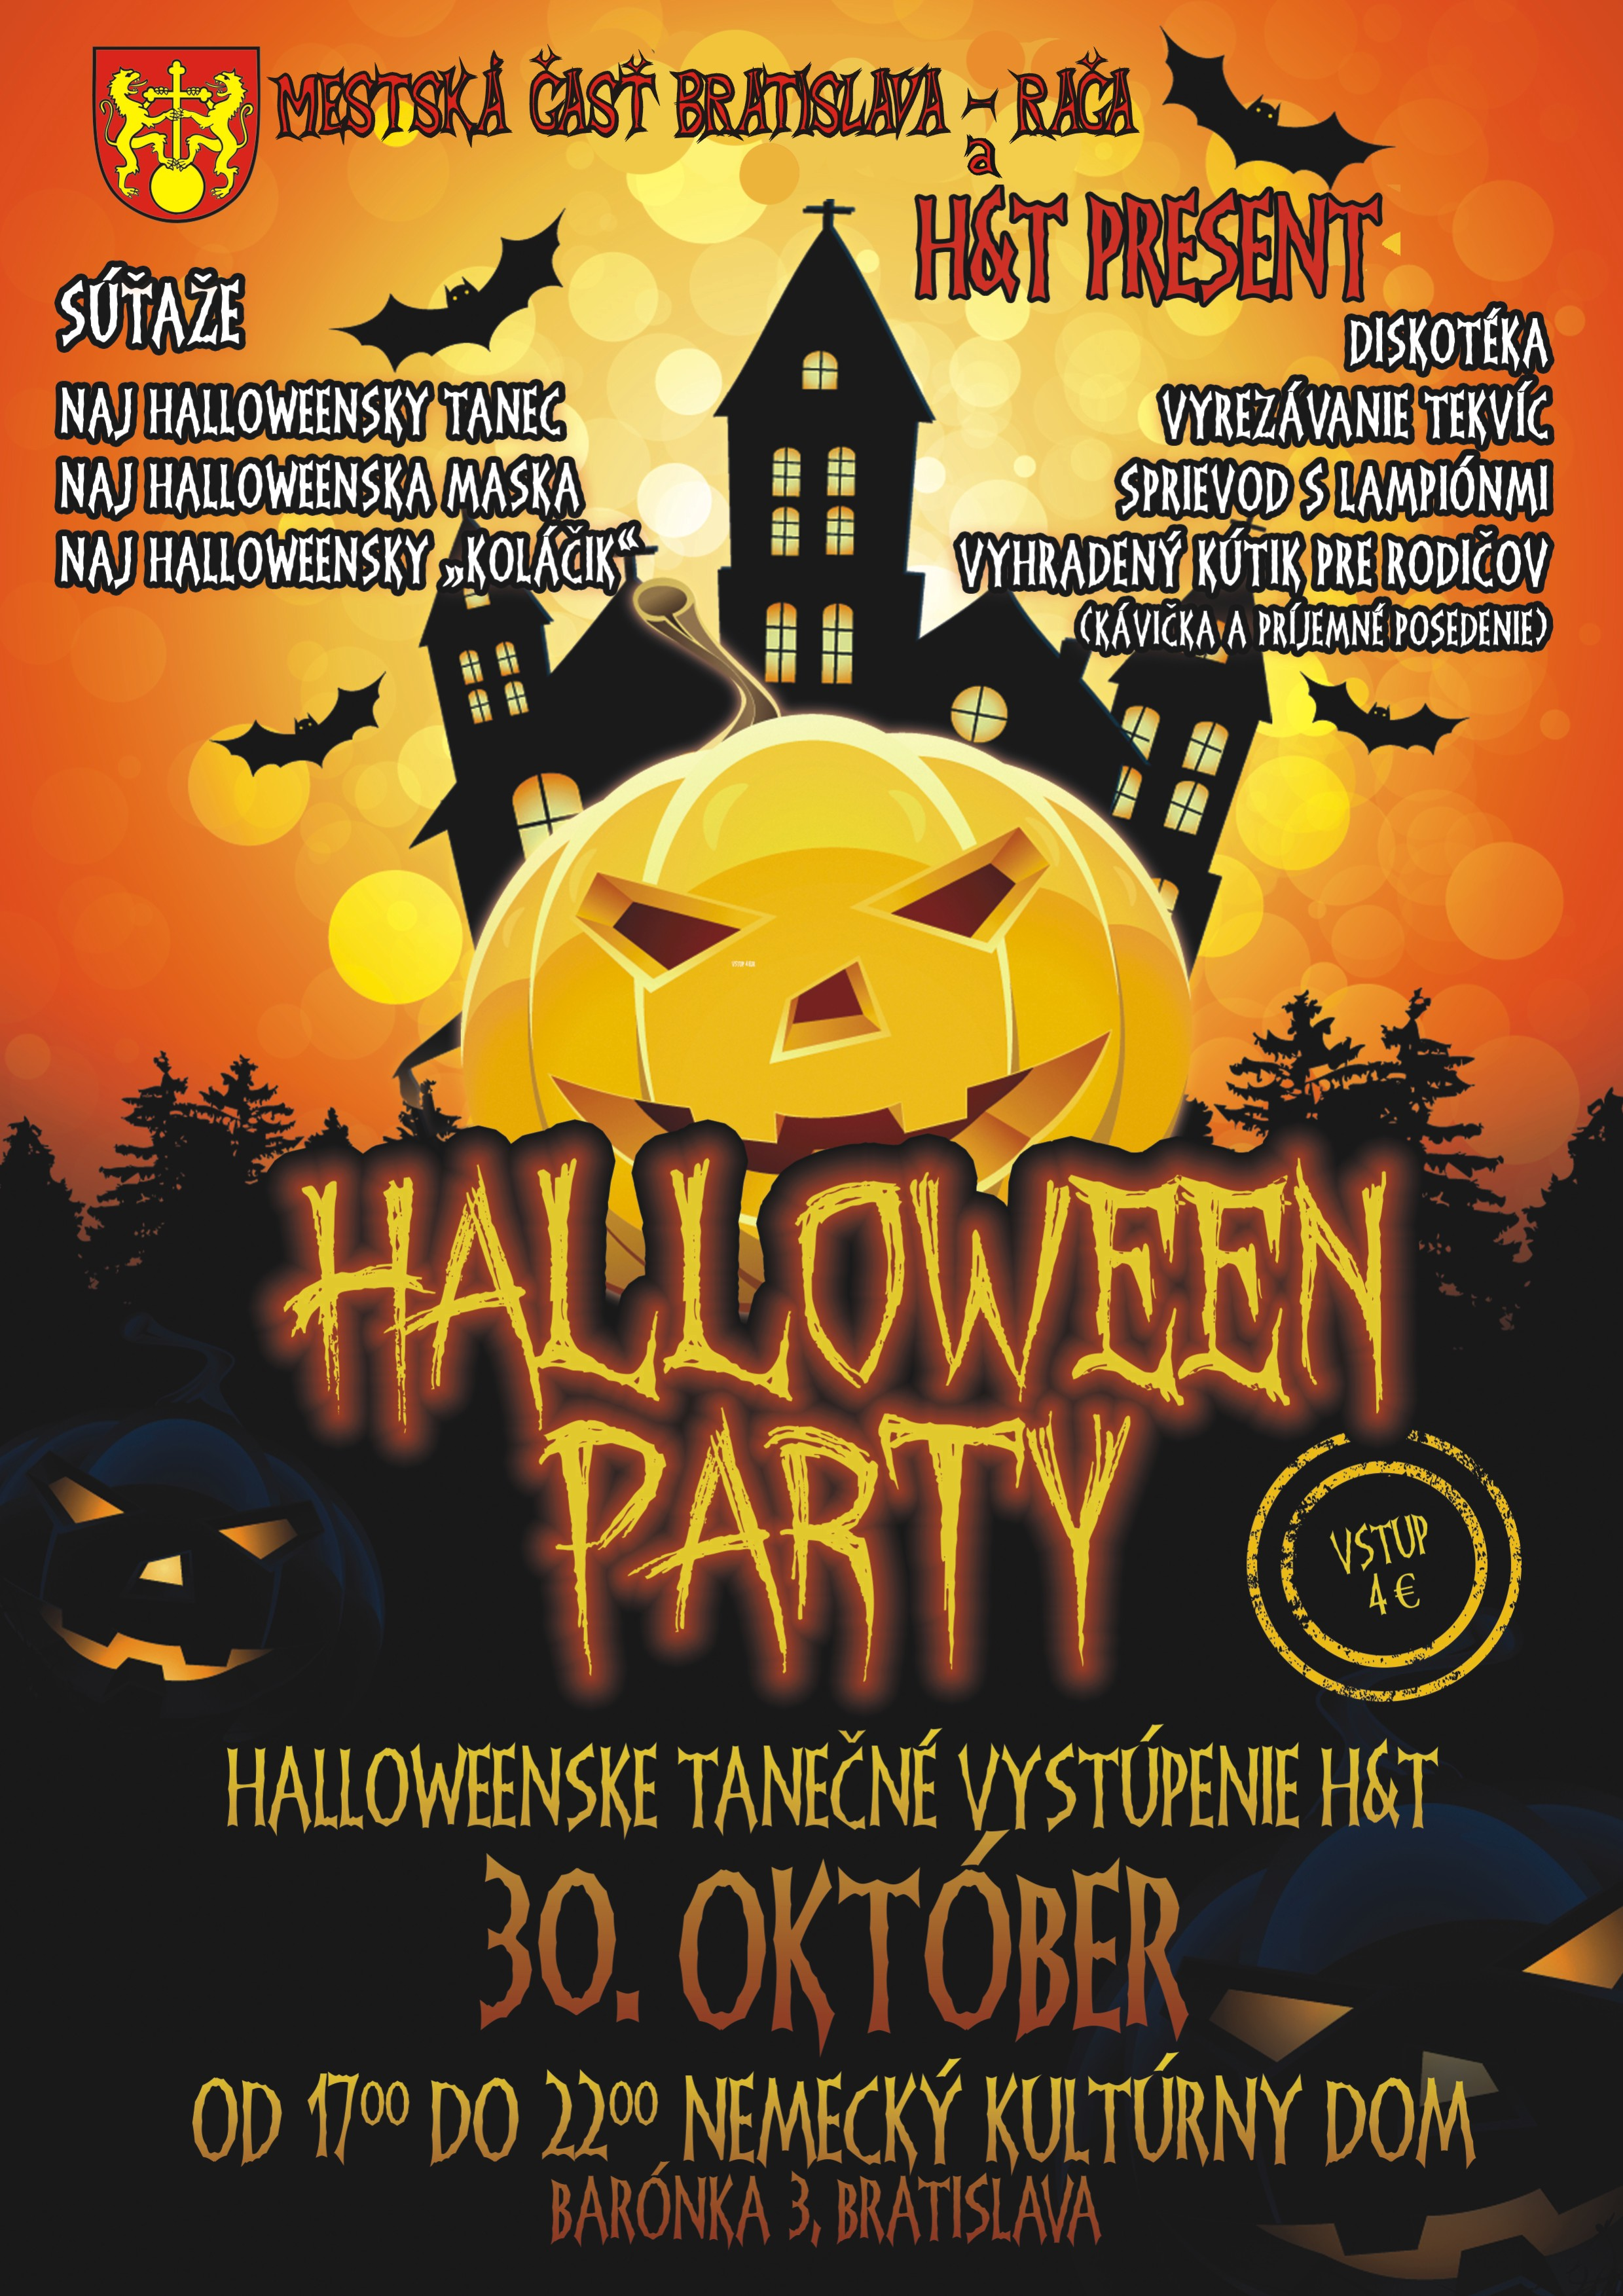 Helloween Party Rača 2015